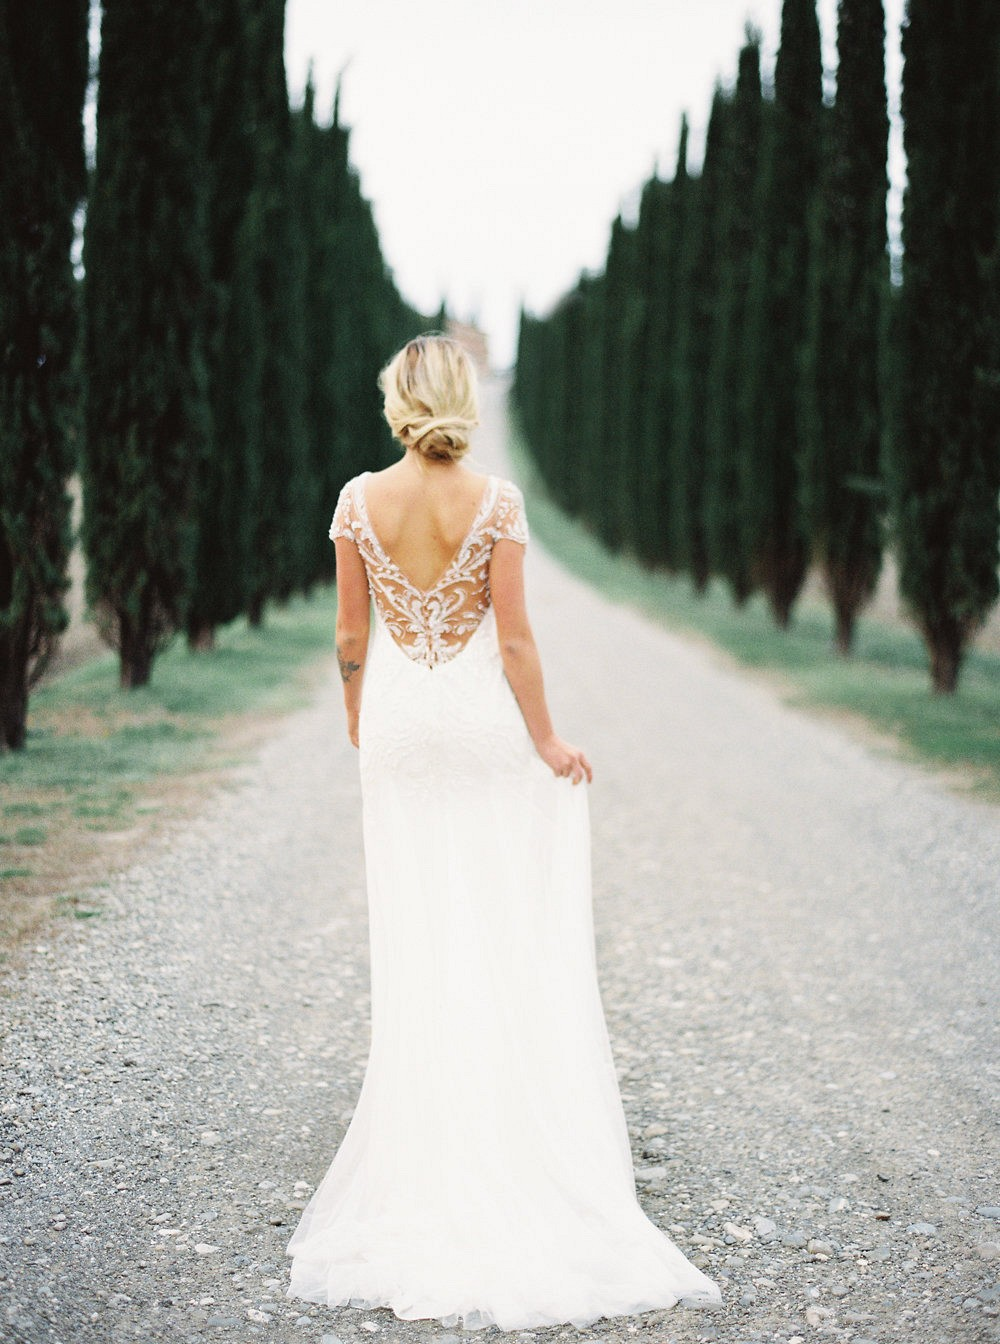 Rustic Italian Villa Wedding Ideas